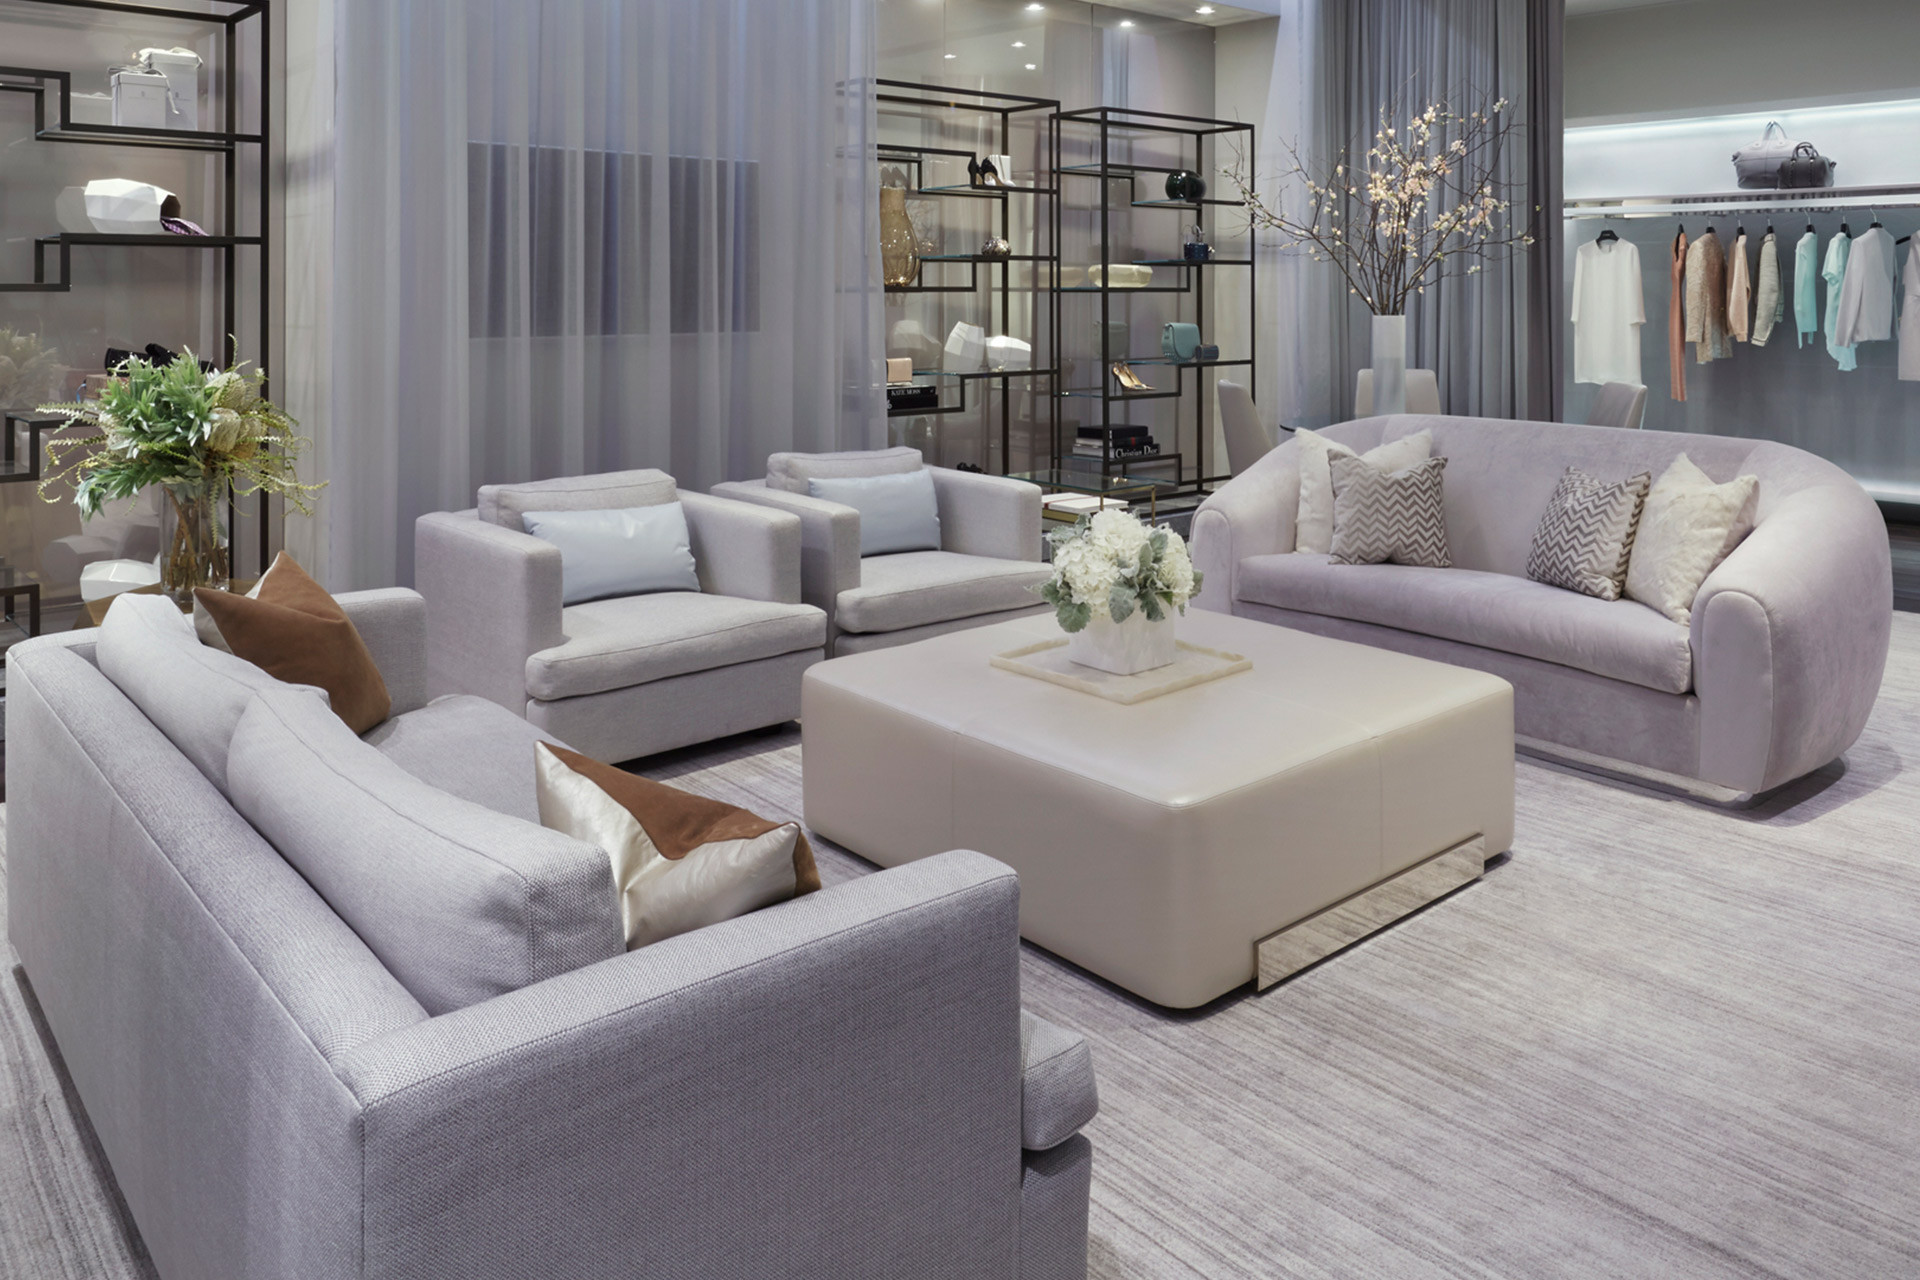 Furniture Store Downtown Toronto Luxury Furniture Toronto Fine Furniture Toronto Designer